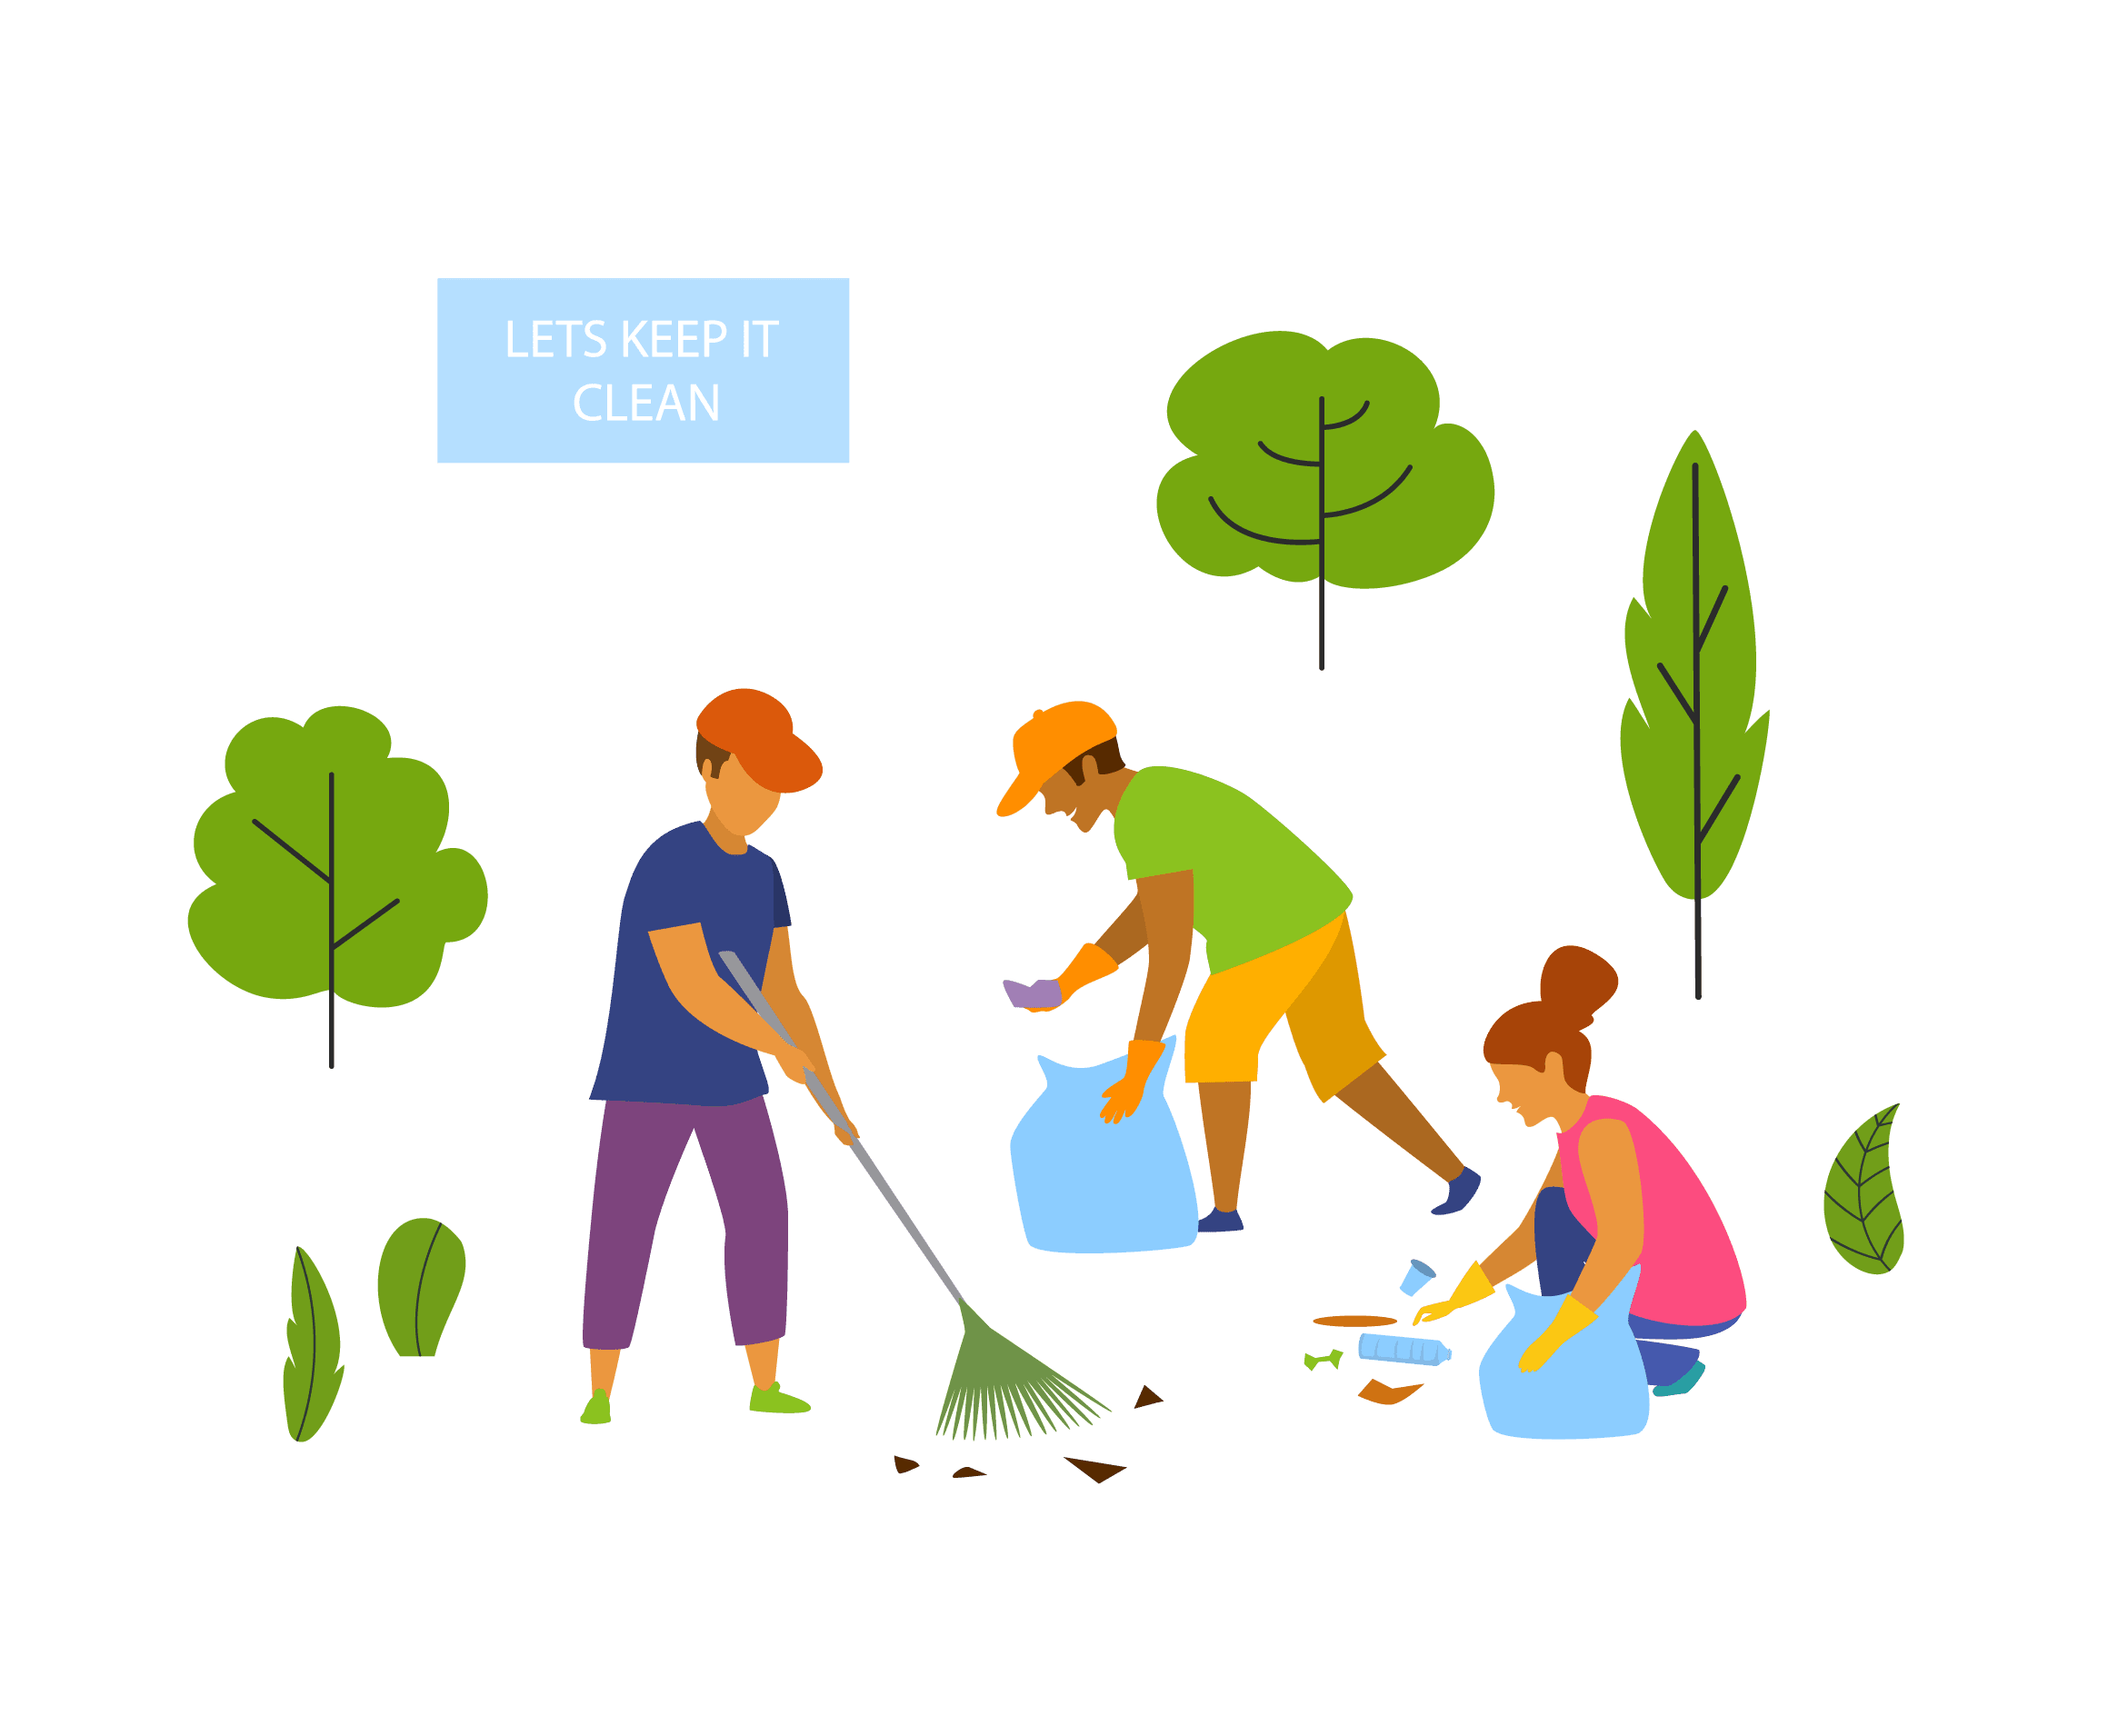 Graphic of people cleaning a park